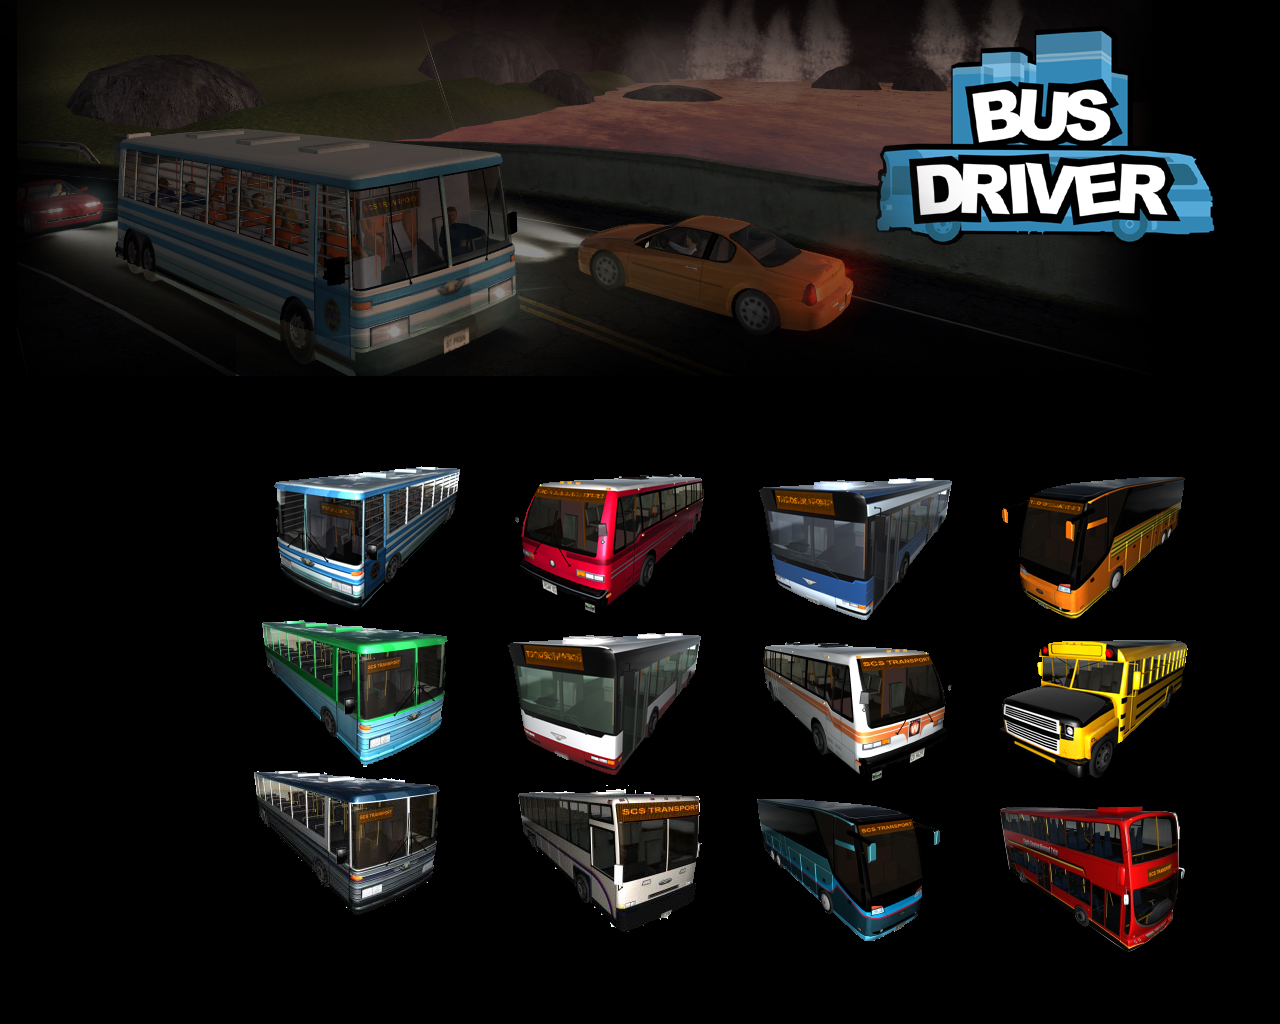 telecharger bus . driver . gratuit